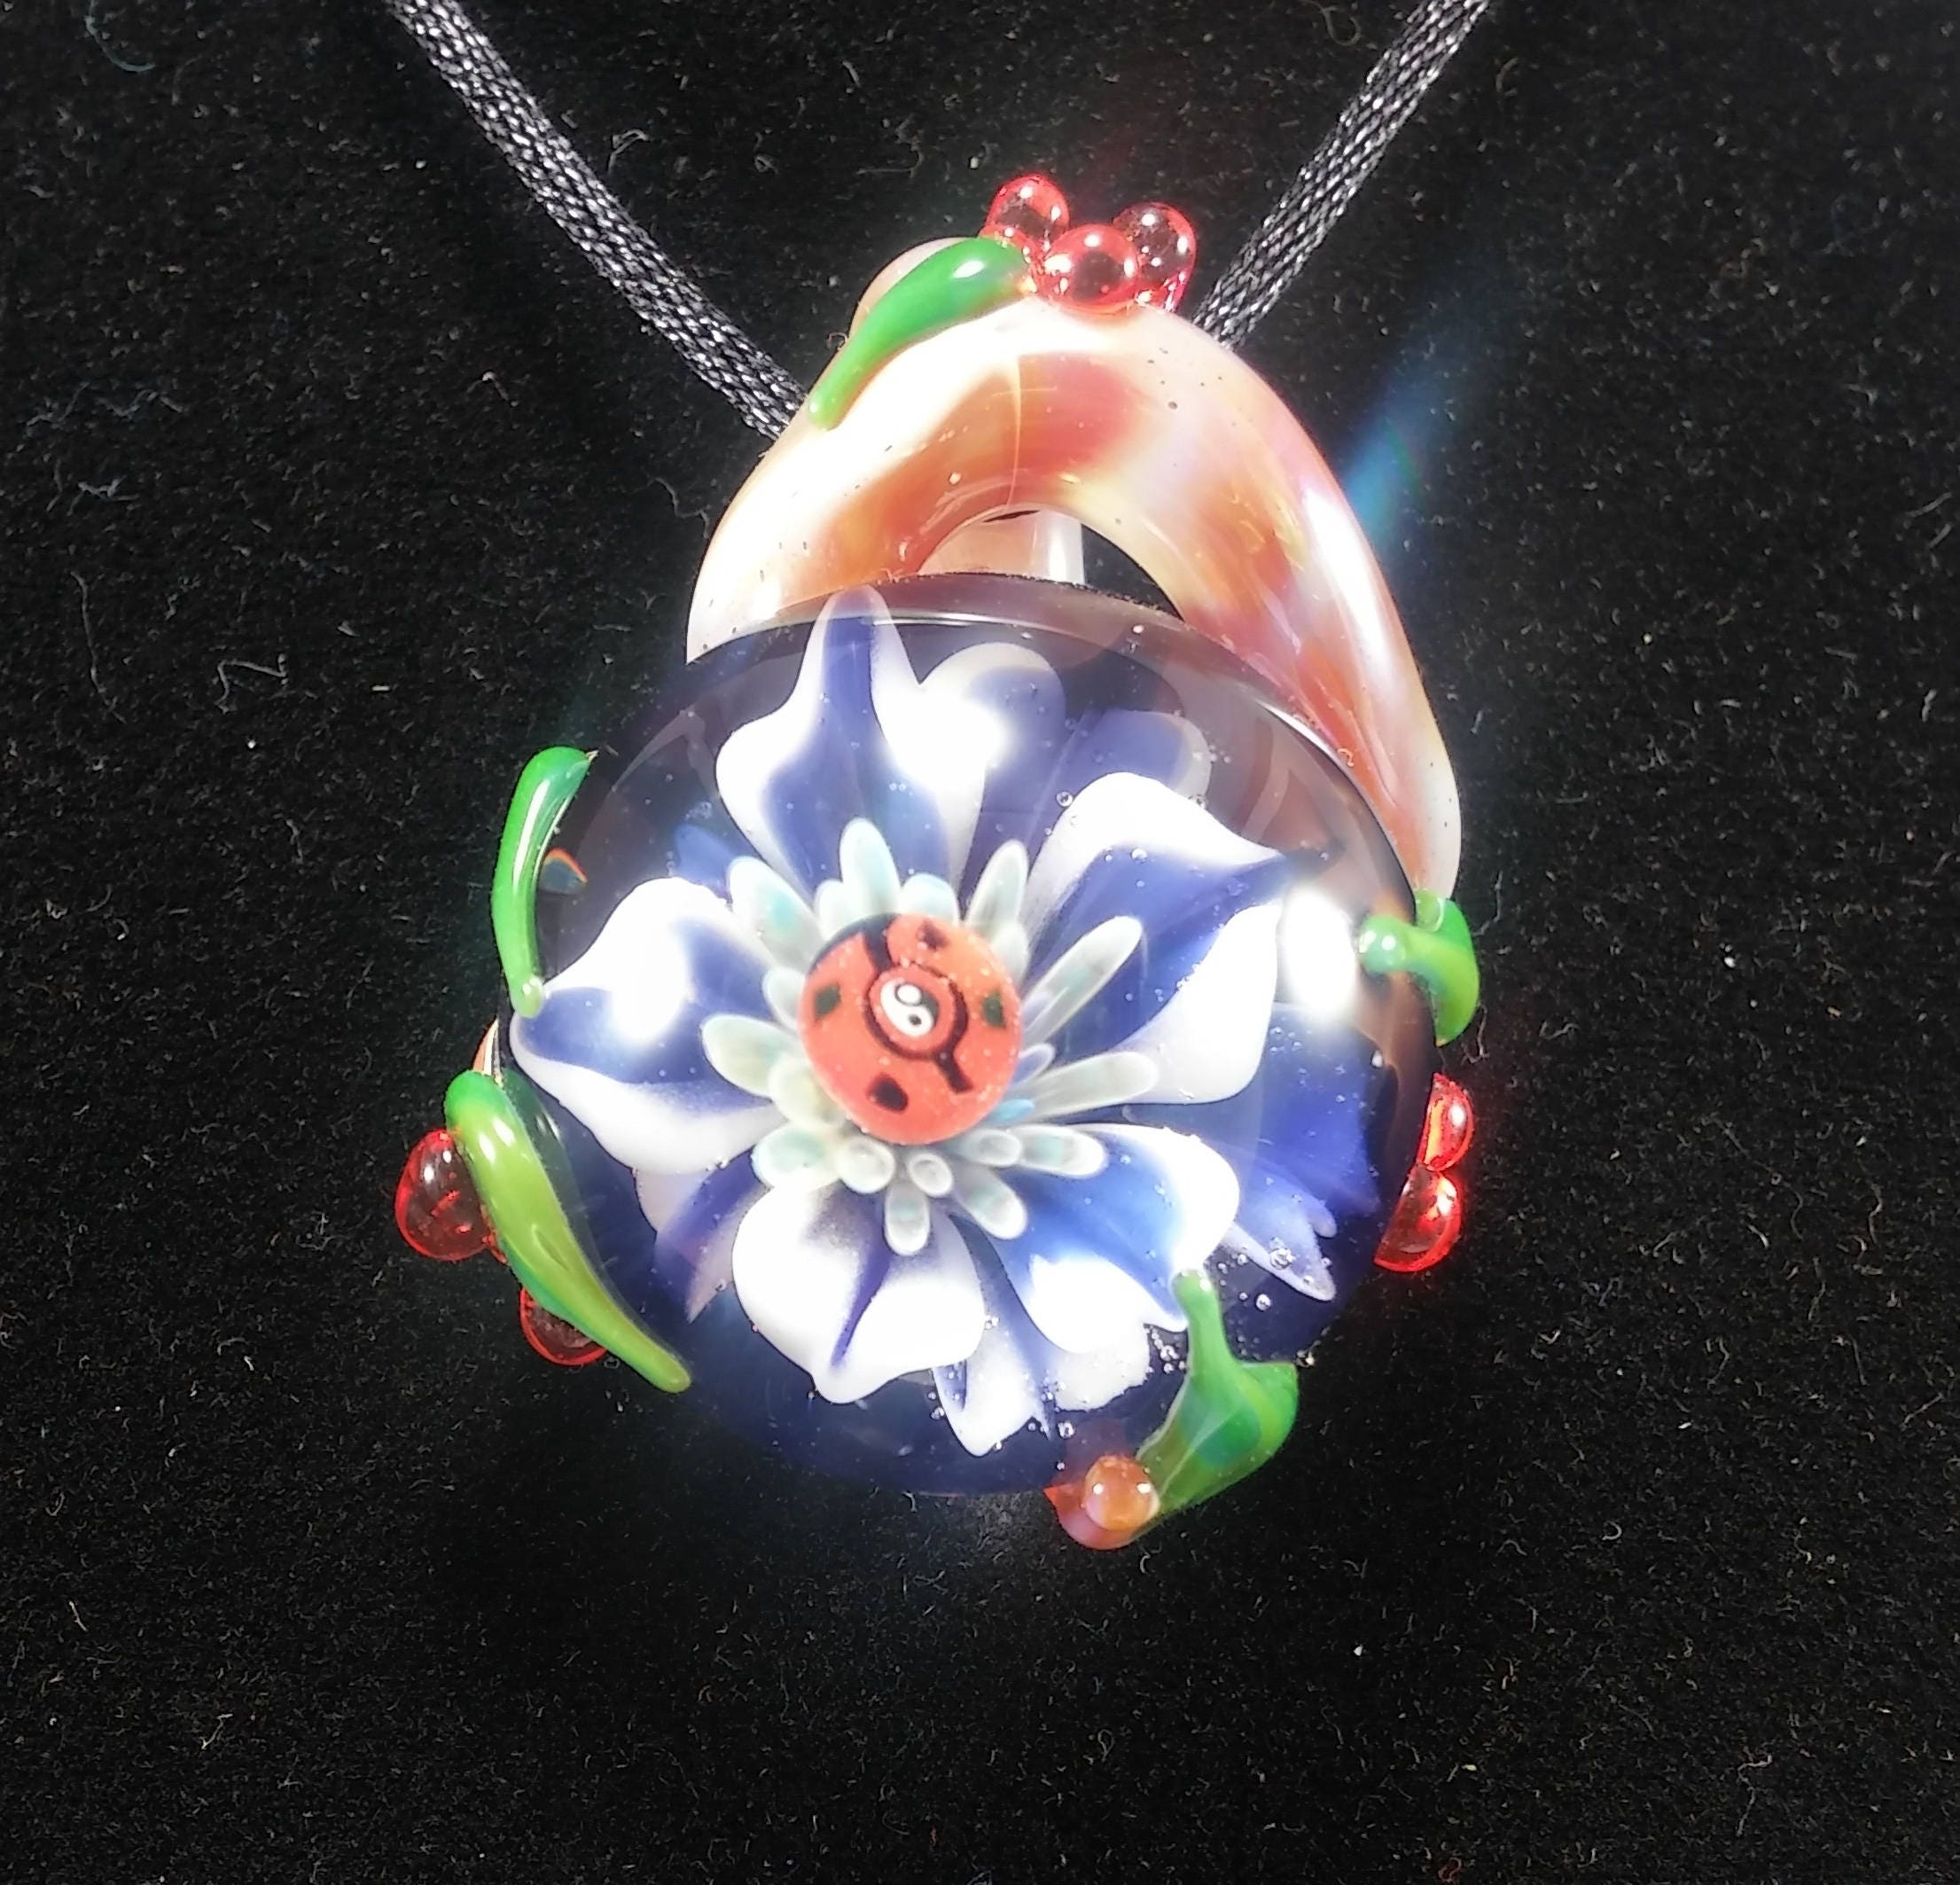 Good luck garden pendant ladybug with a yin yang for its good luck garden pendant ladybug with a yin yang for its center spot blue and white flower with green leaves red berries brown branches mightylinksfo